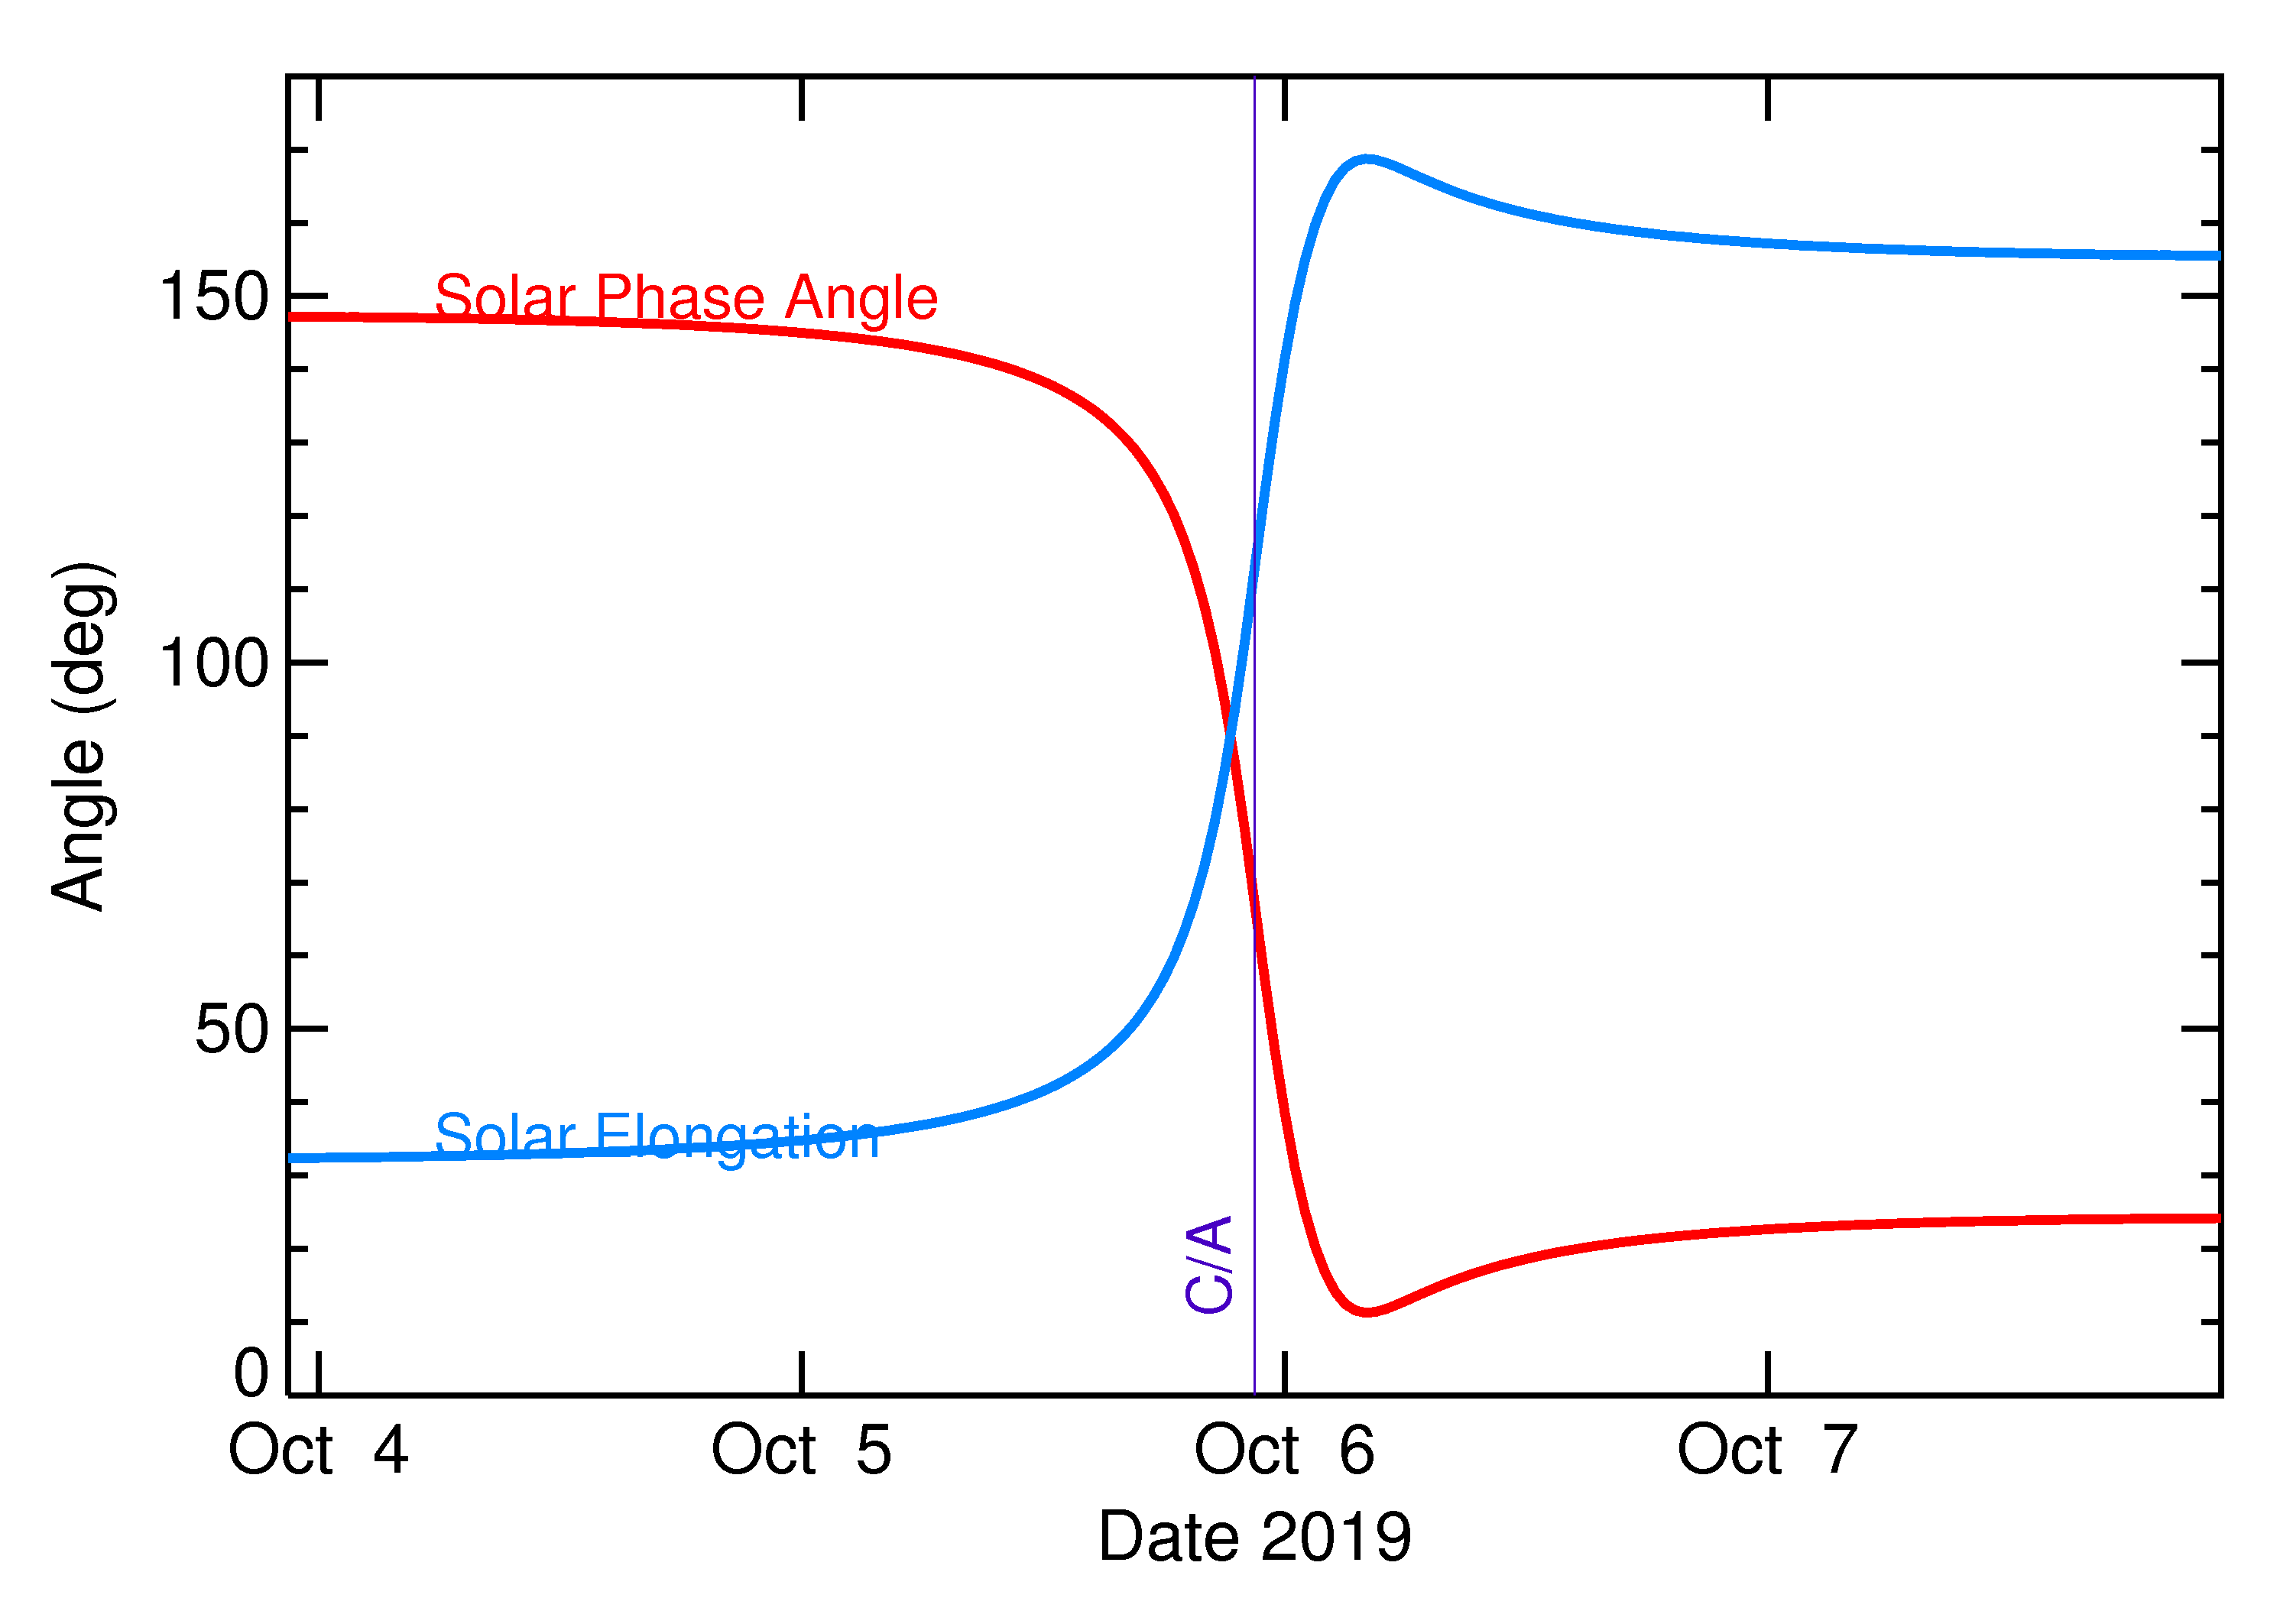 Solar Elongation and Solar Phase Angle of 2019 TN5 in the days around closest approach